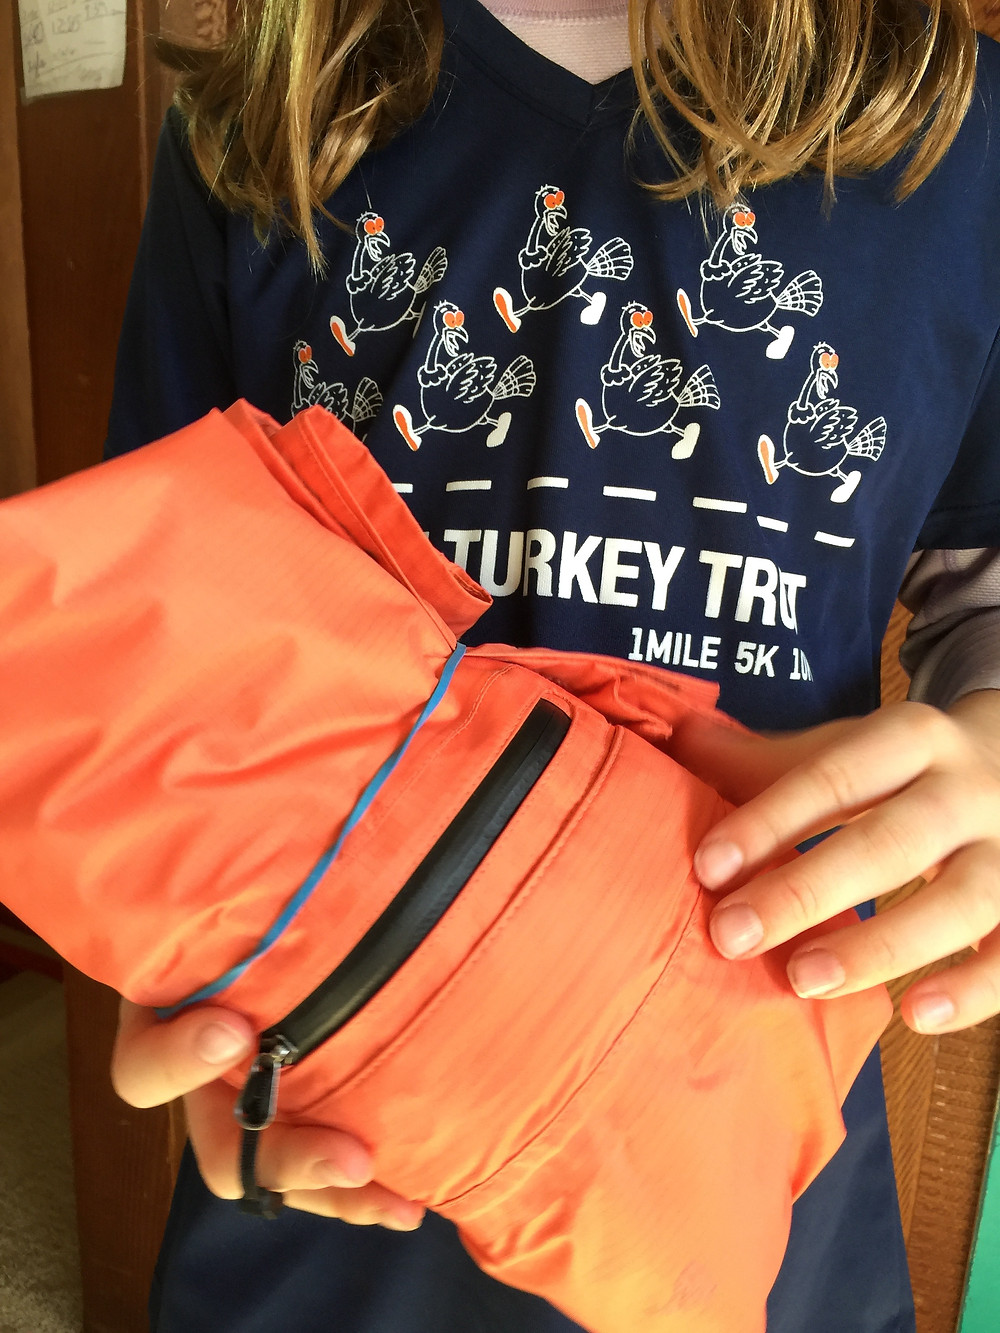 Traveling with Kids - Roll and Rubberband clothes to keep them neat and organized in a suitcase